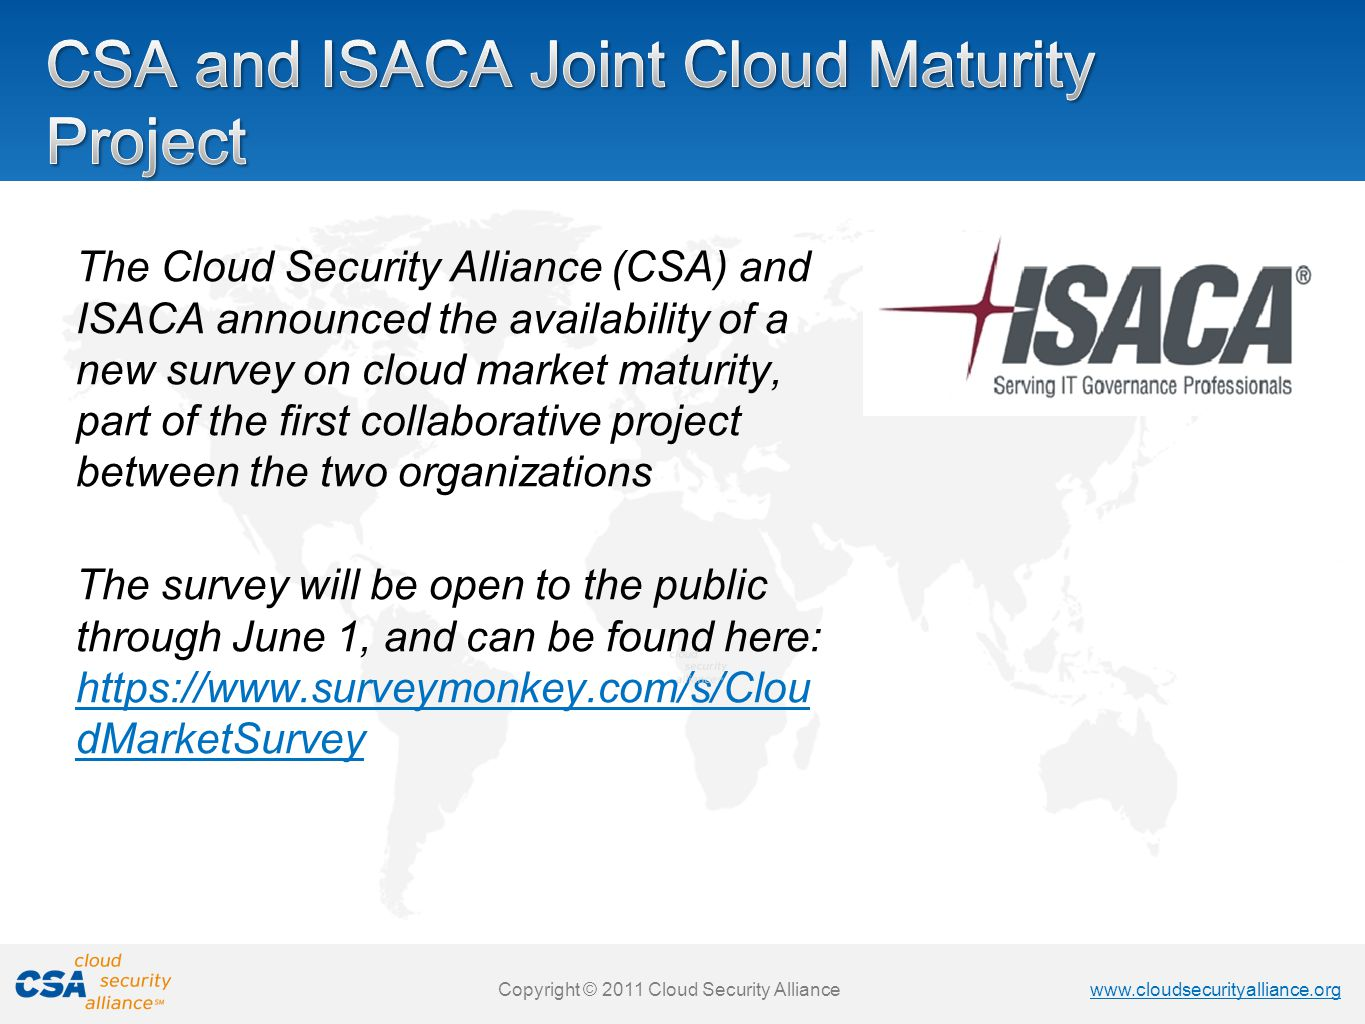 CSA and ISACA Joint Cloud Maturity Project